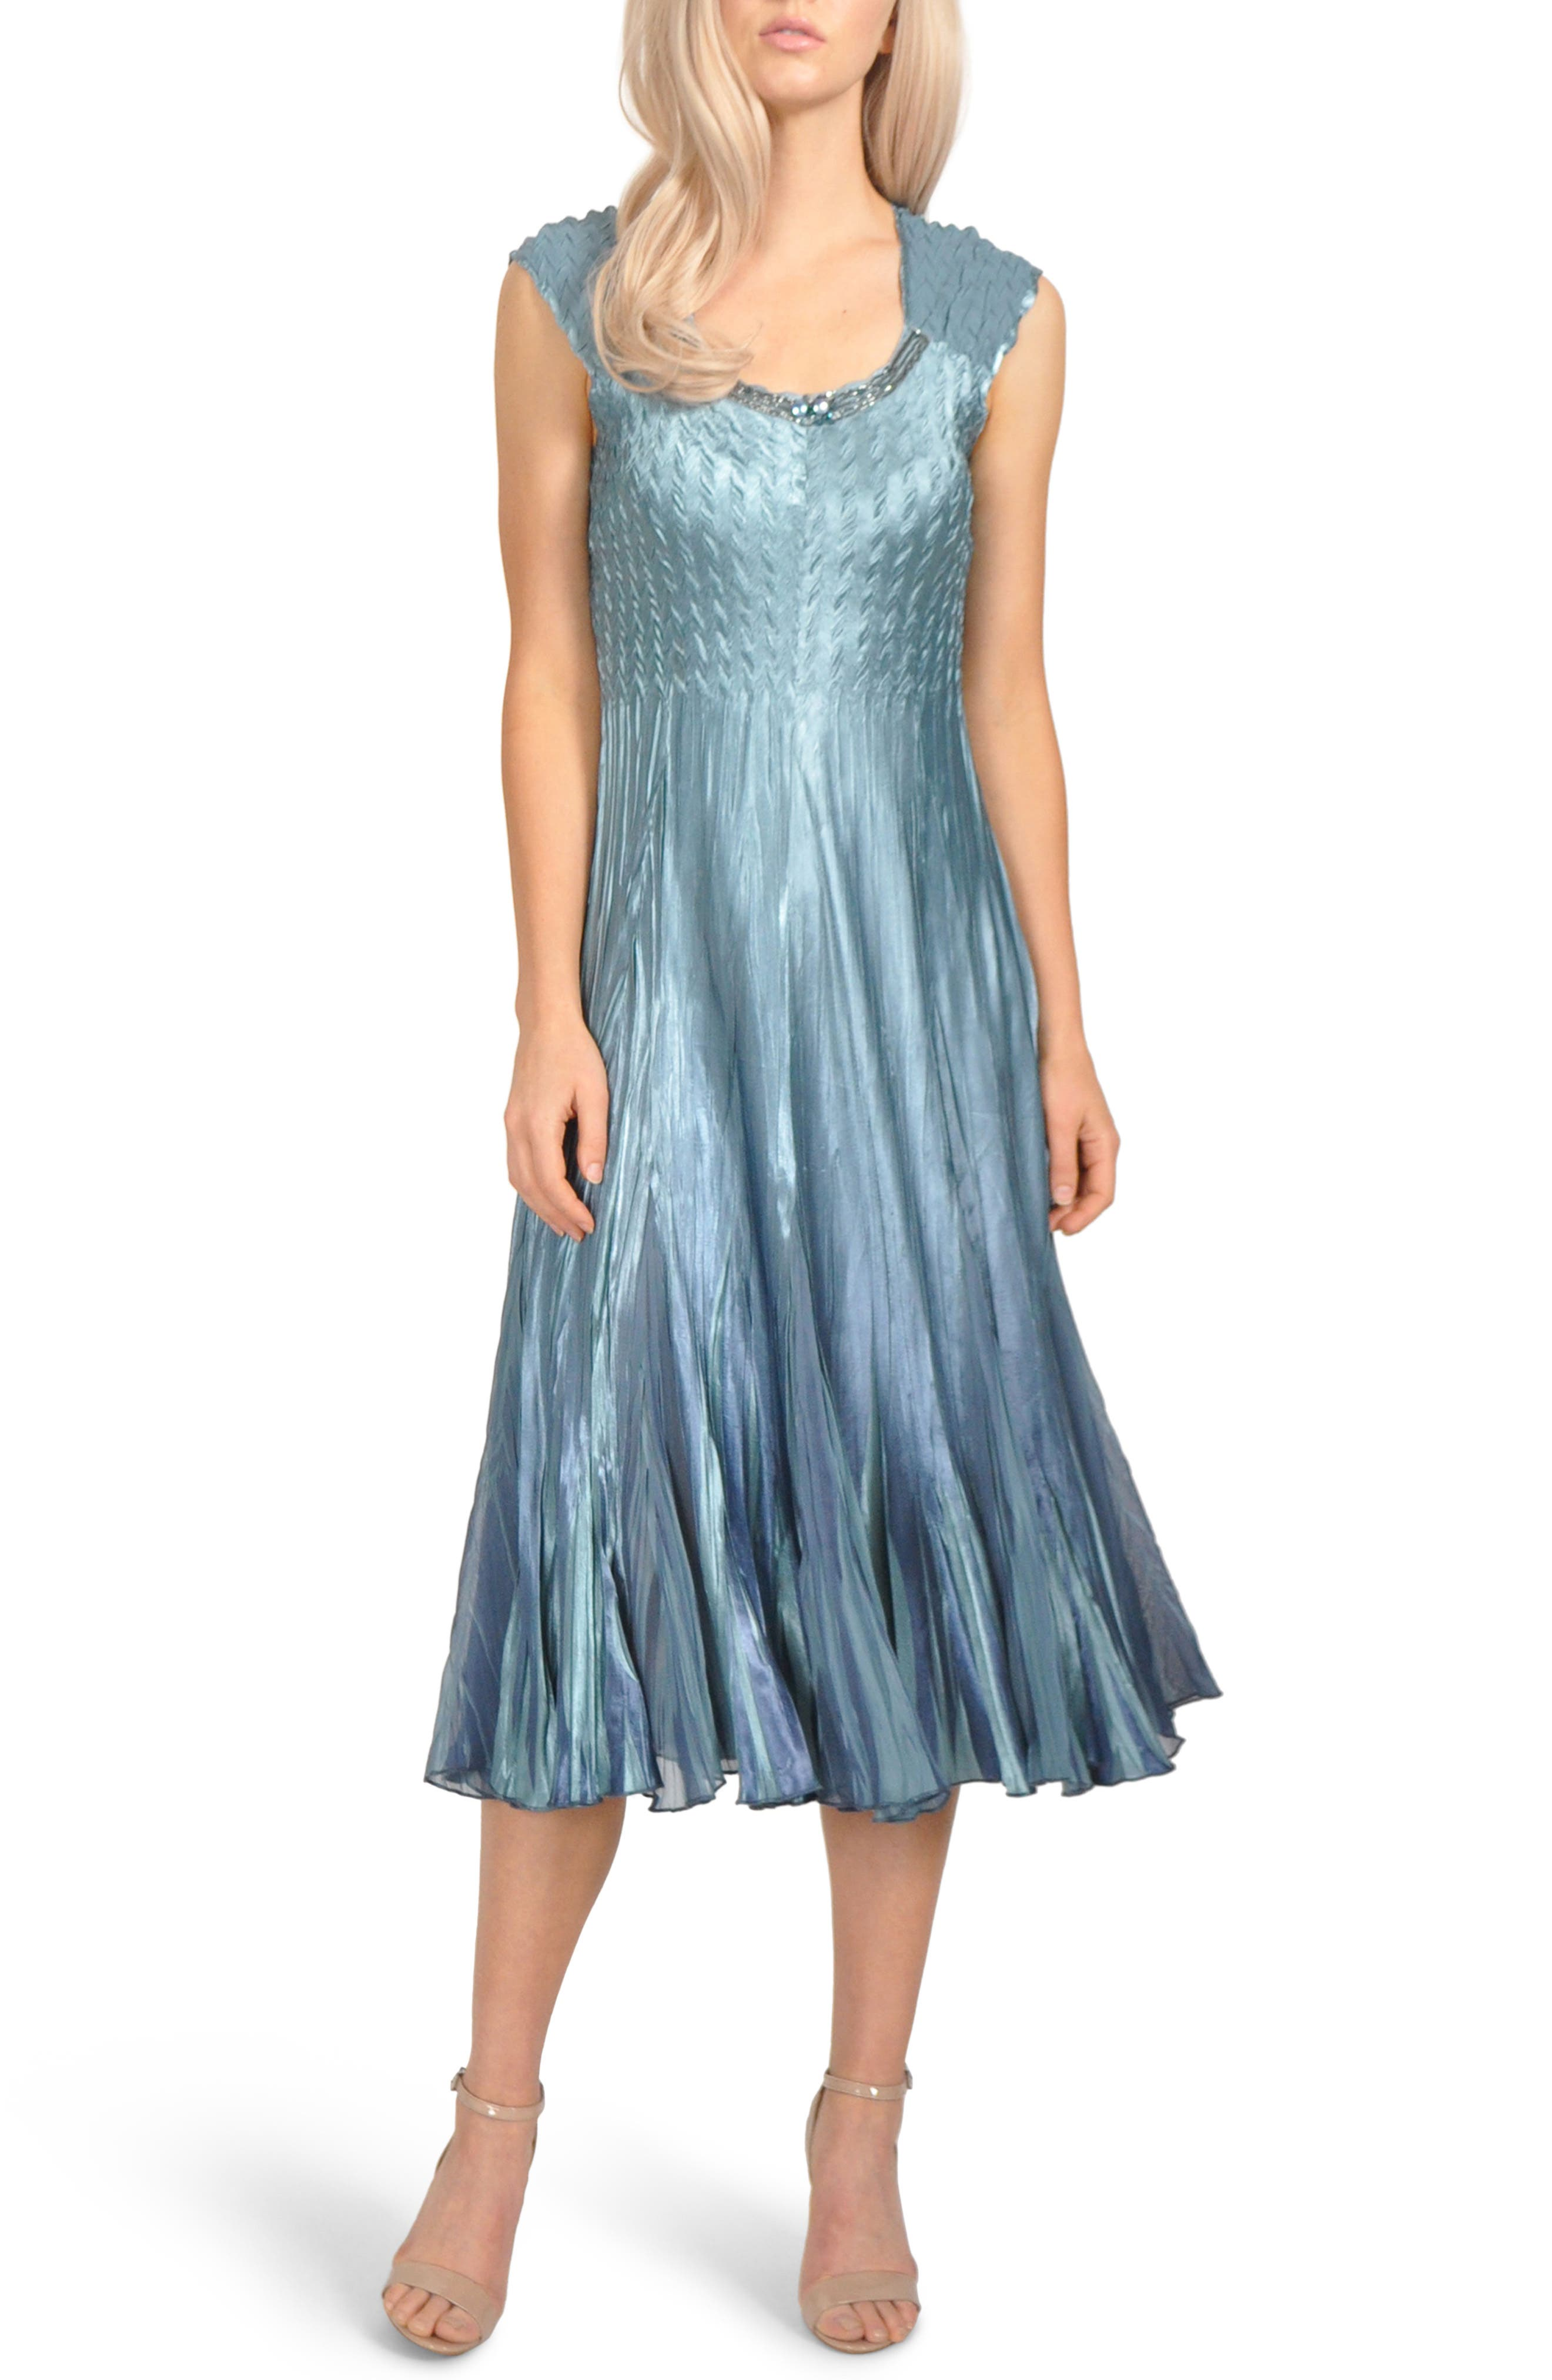 Mother-of-Bride and Groom Dresses & Separates   Nordstrom